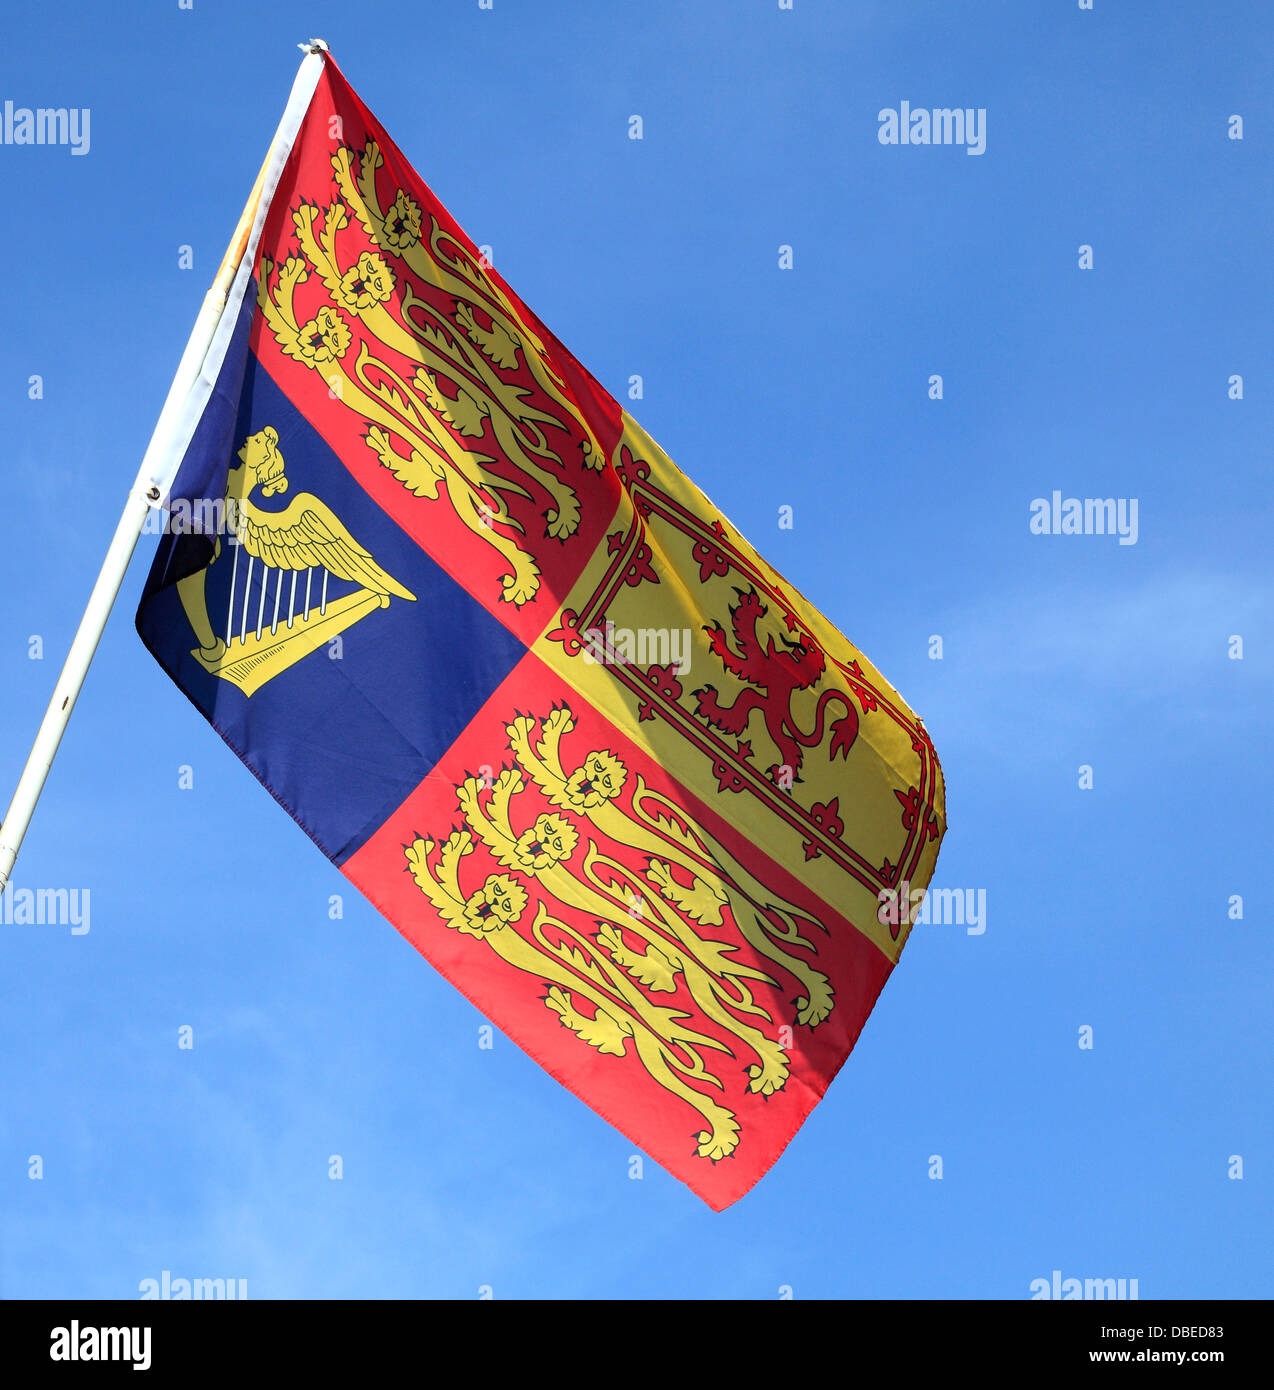 Royal Standard, d'un drapeau, drapeaux UK Angleterre Photo Stock